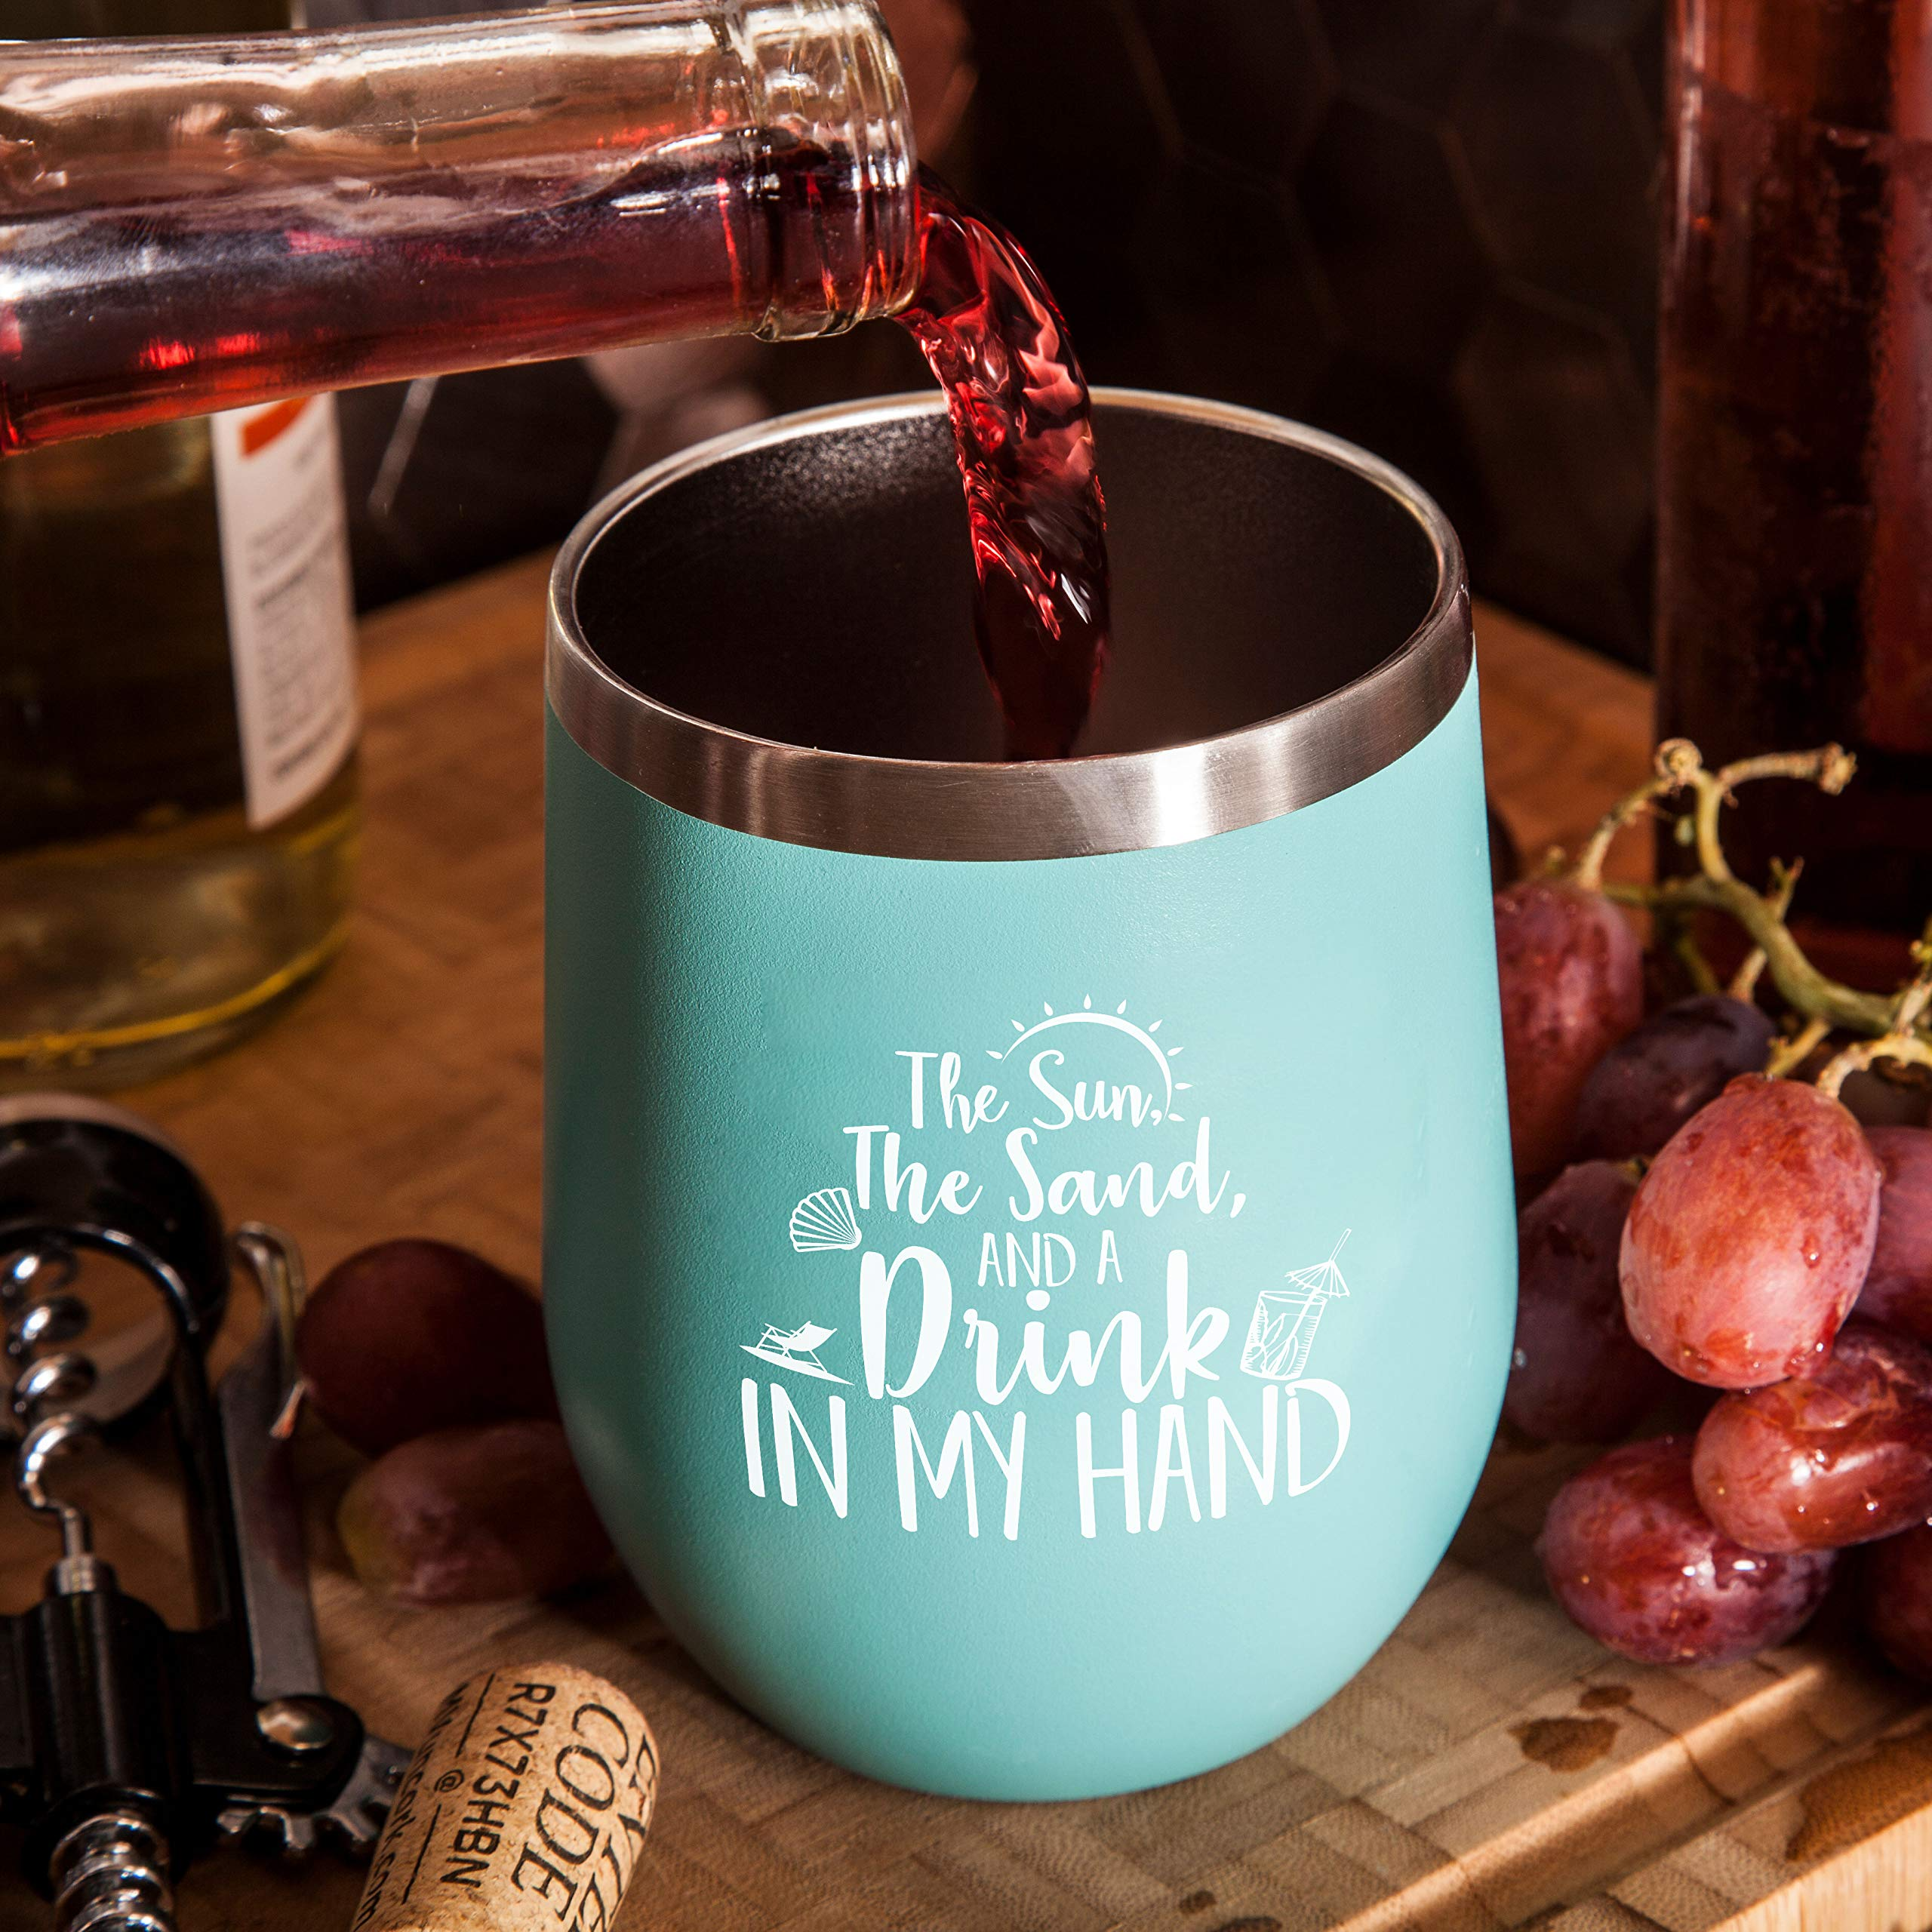 The Sun The Sand and A Drink In My Hand - Perfect Insulated Travel Cup for The Beach, Lake or Pool - 12 oz Stainless Steel Wine Glass Tumbler with Lid by Gelid (Image #4)